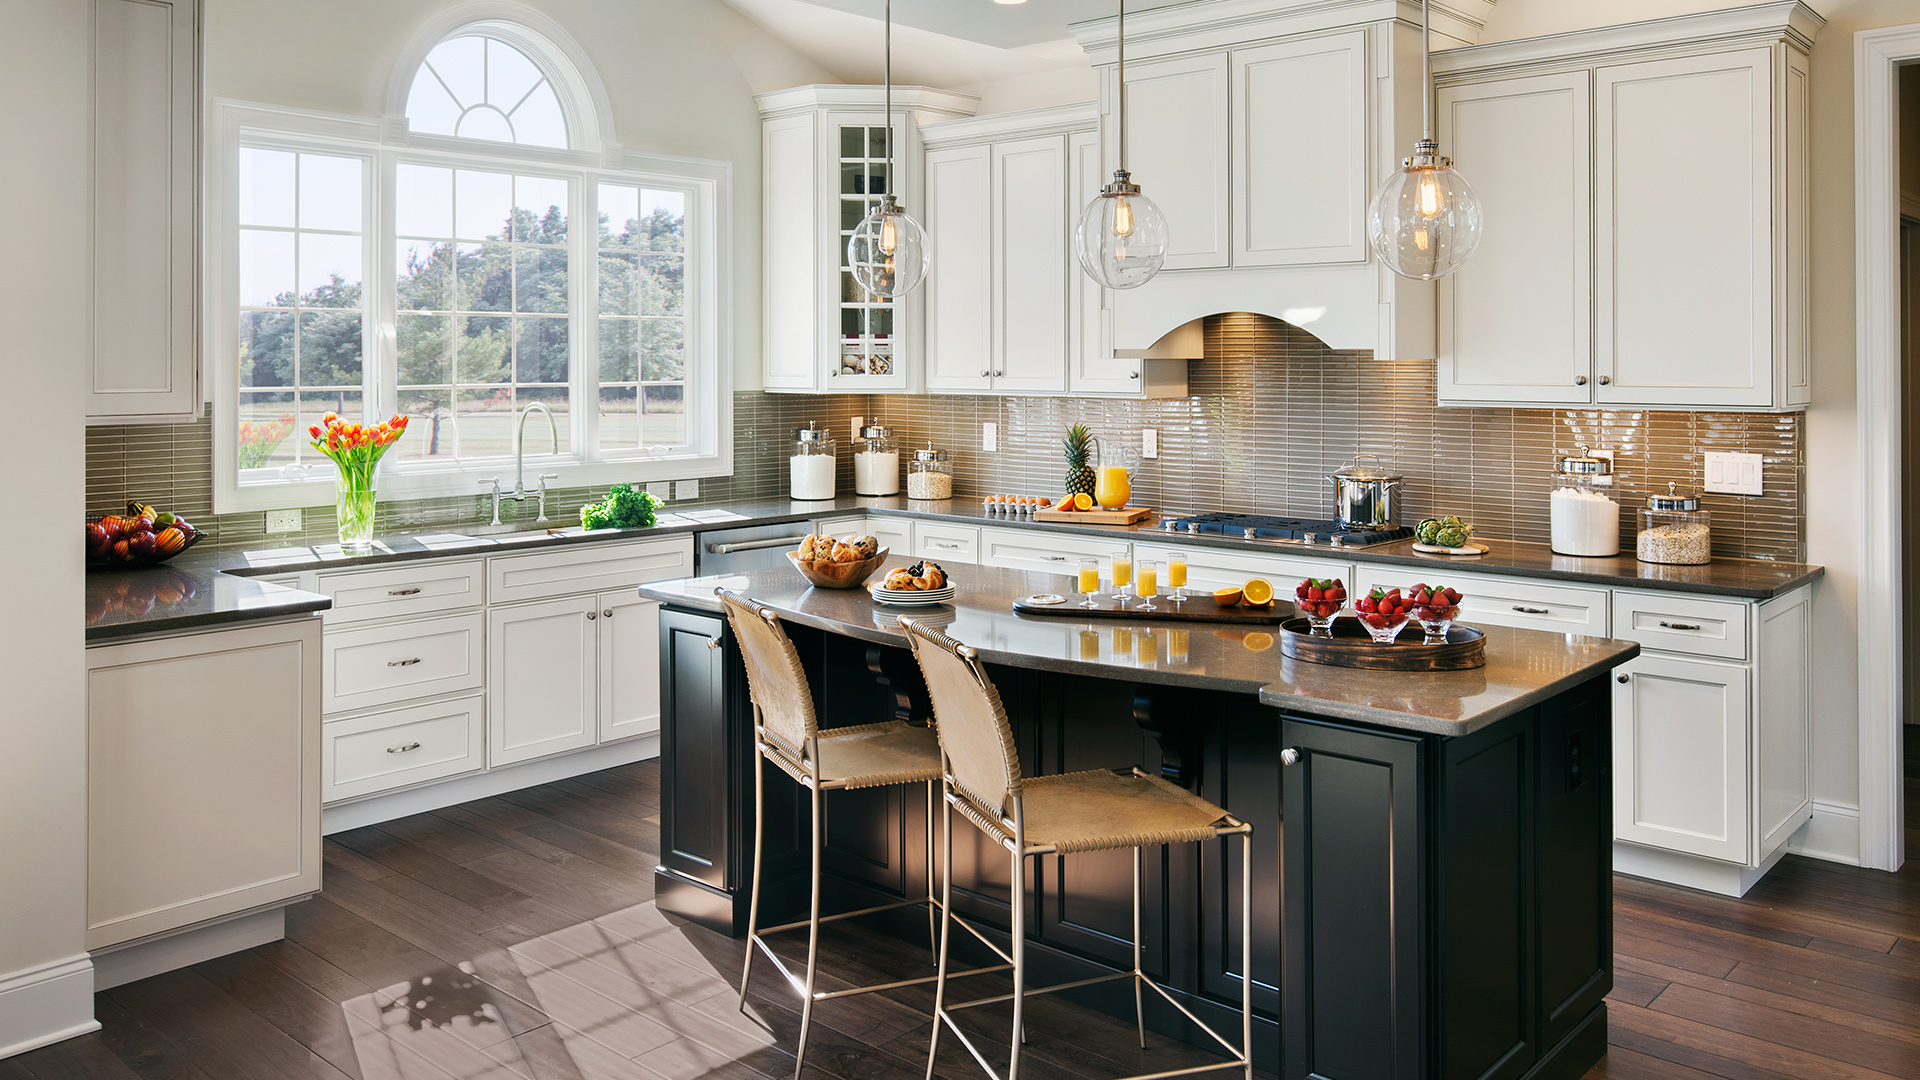 Kitchen Design Center York Pa Bathroom Inspiration Gallery Toll Brothers Luxury Homes